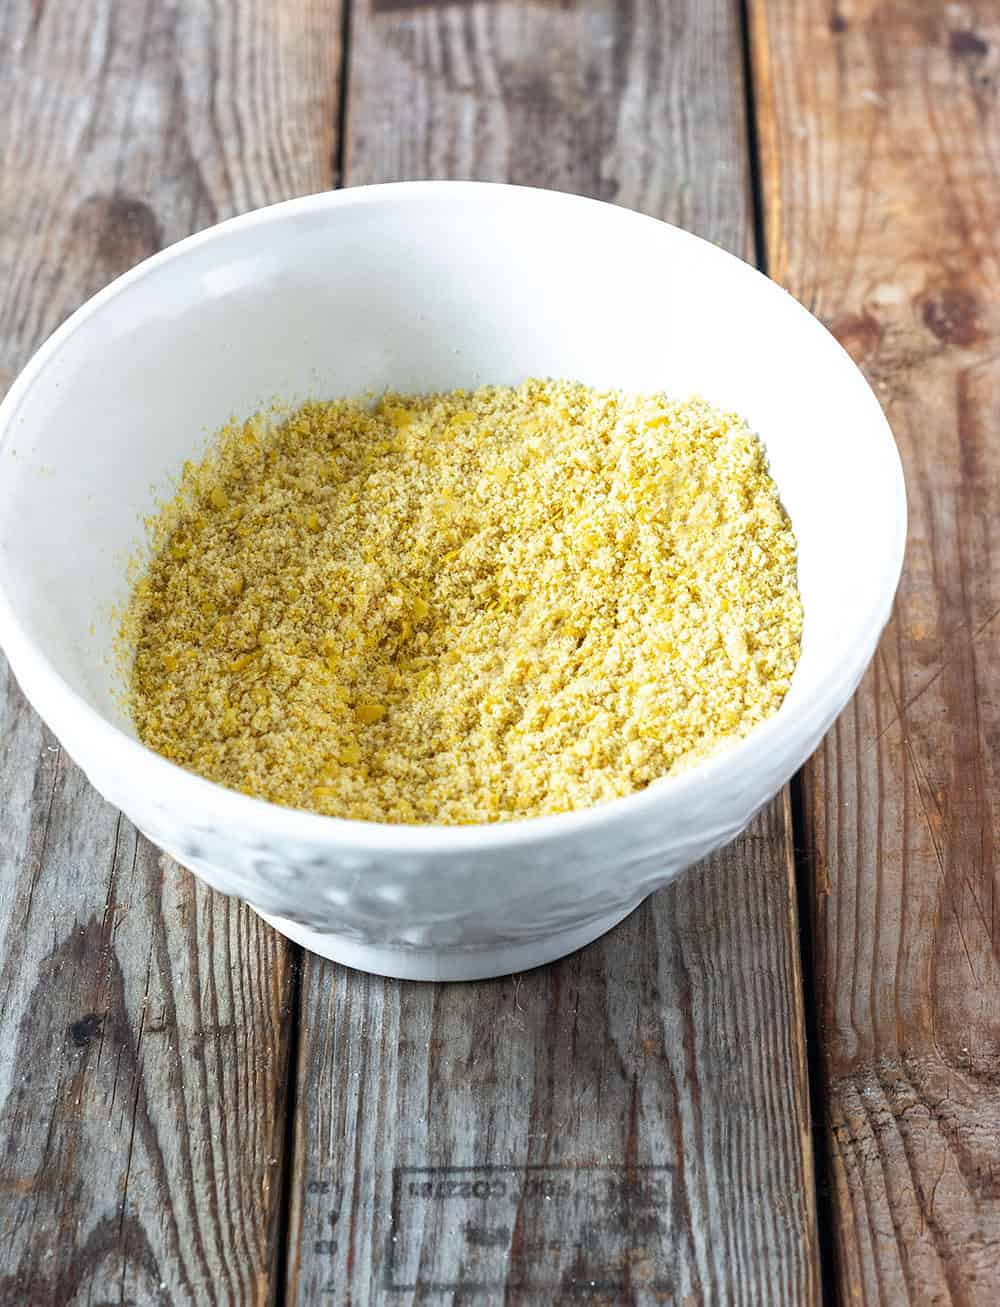 Vegan parmesan cheese mix in a bowl on a wooden background